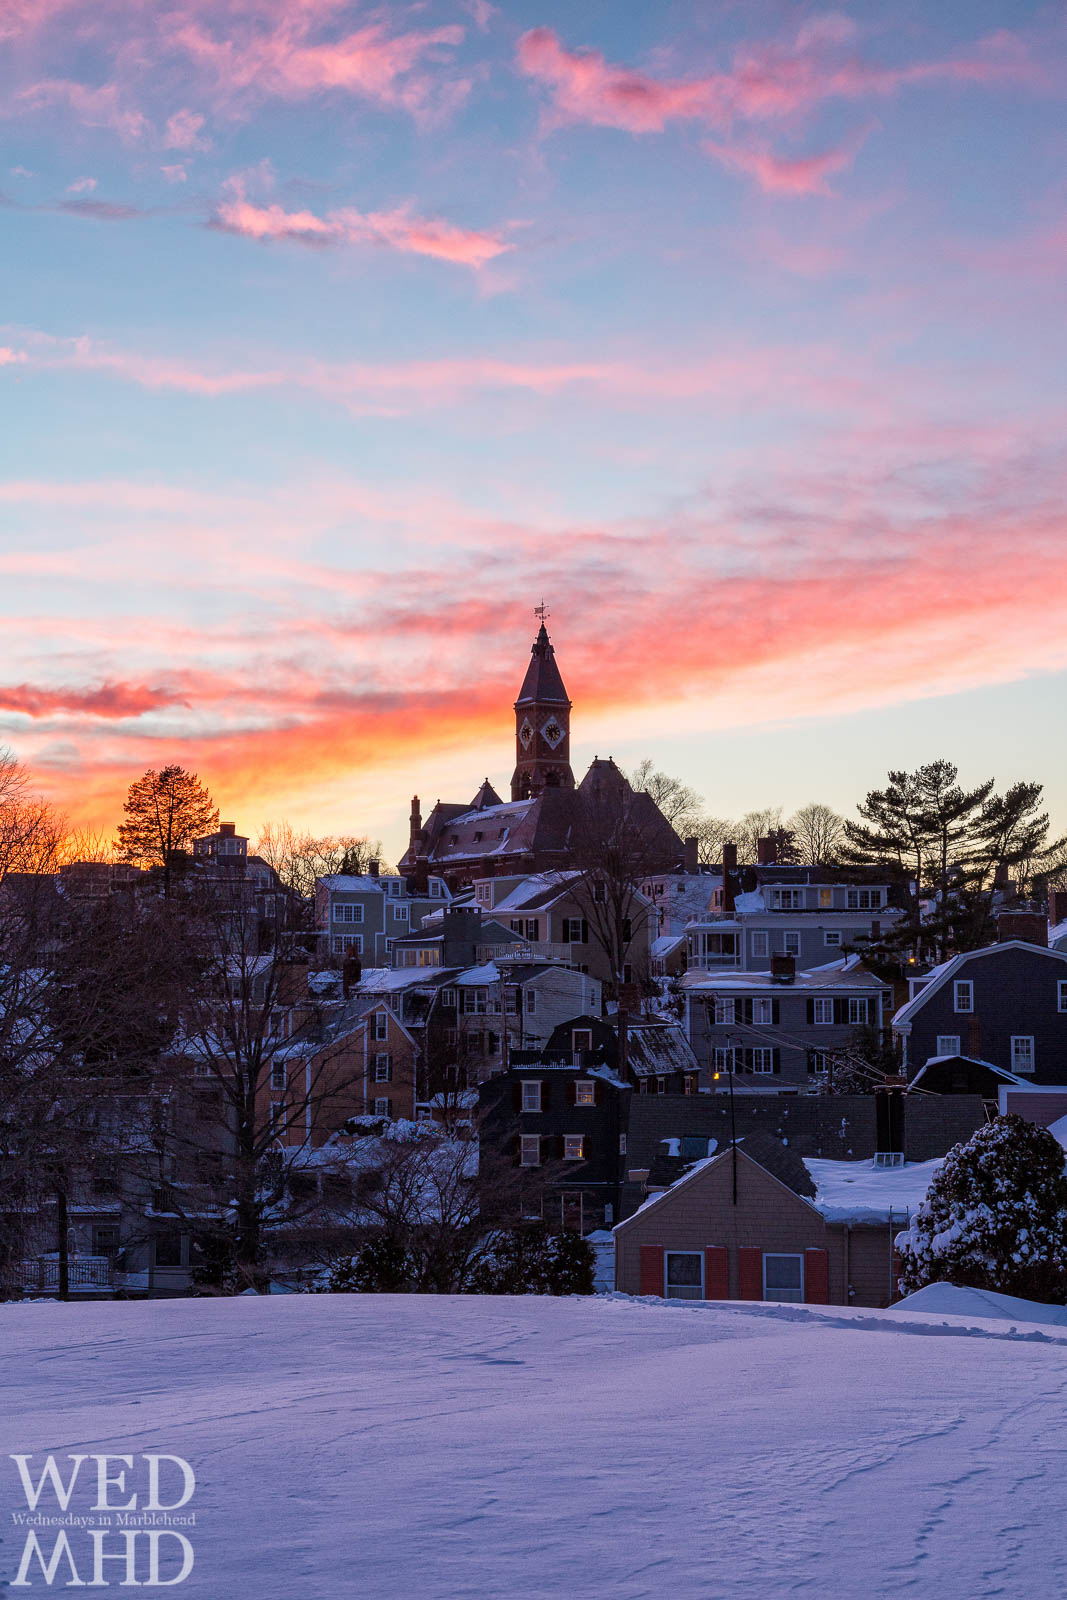 A beautiful sunset forms over Abbot Hall as seen from Crocker Park covered in a blanket of snow